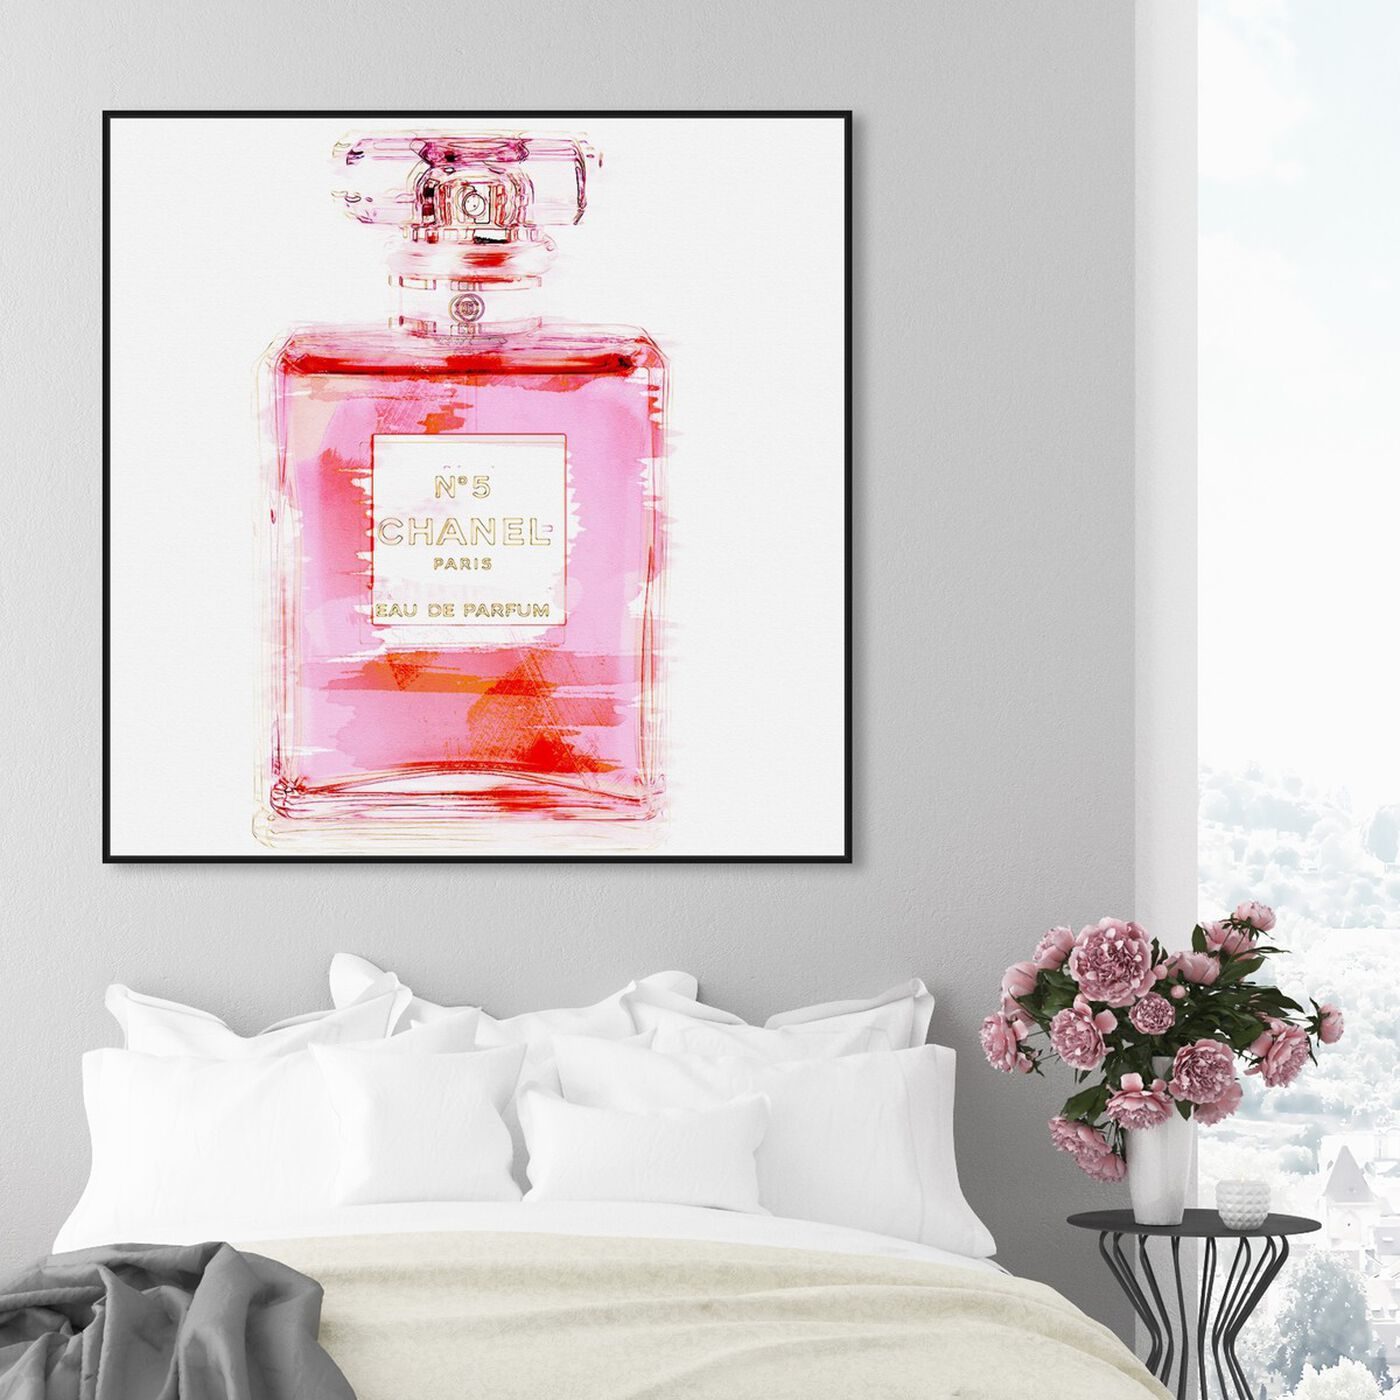 Hanging view of Basenote is Love featuring fashion and glam and perfumes art.